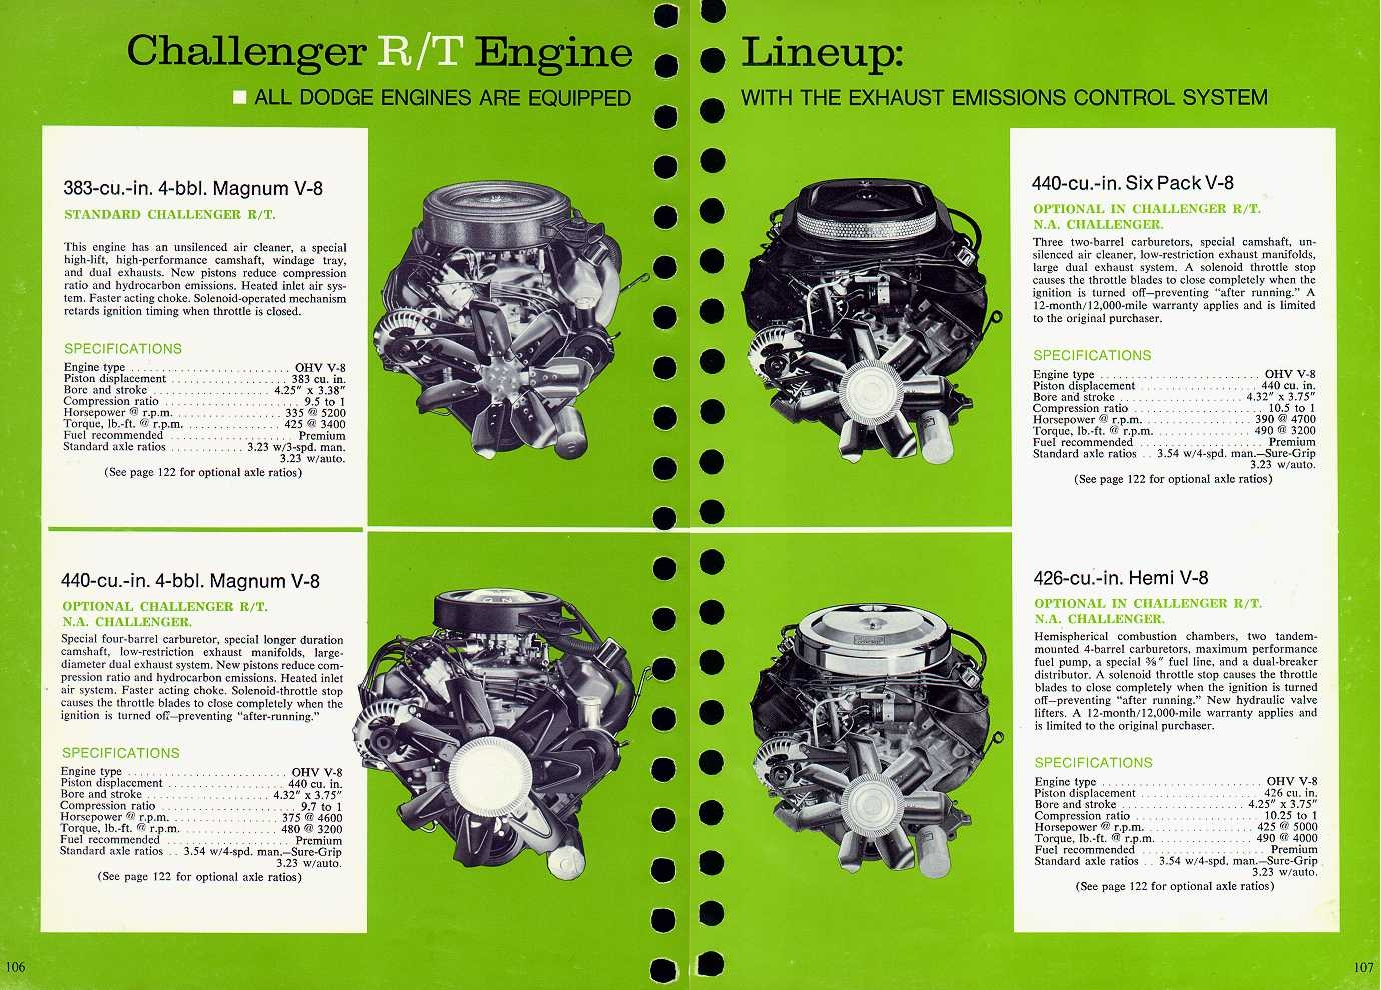 1972 Dodge Challenger >> Media - Challenger Brochure Pics from the Past - Page 2 ...